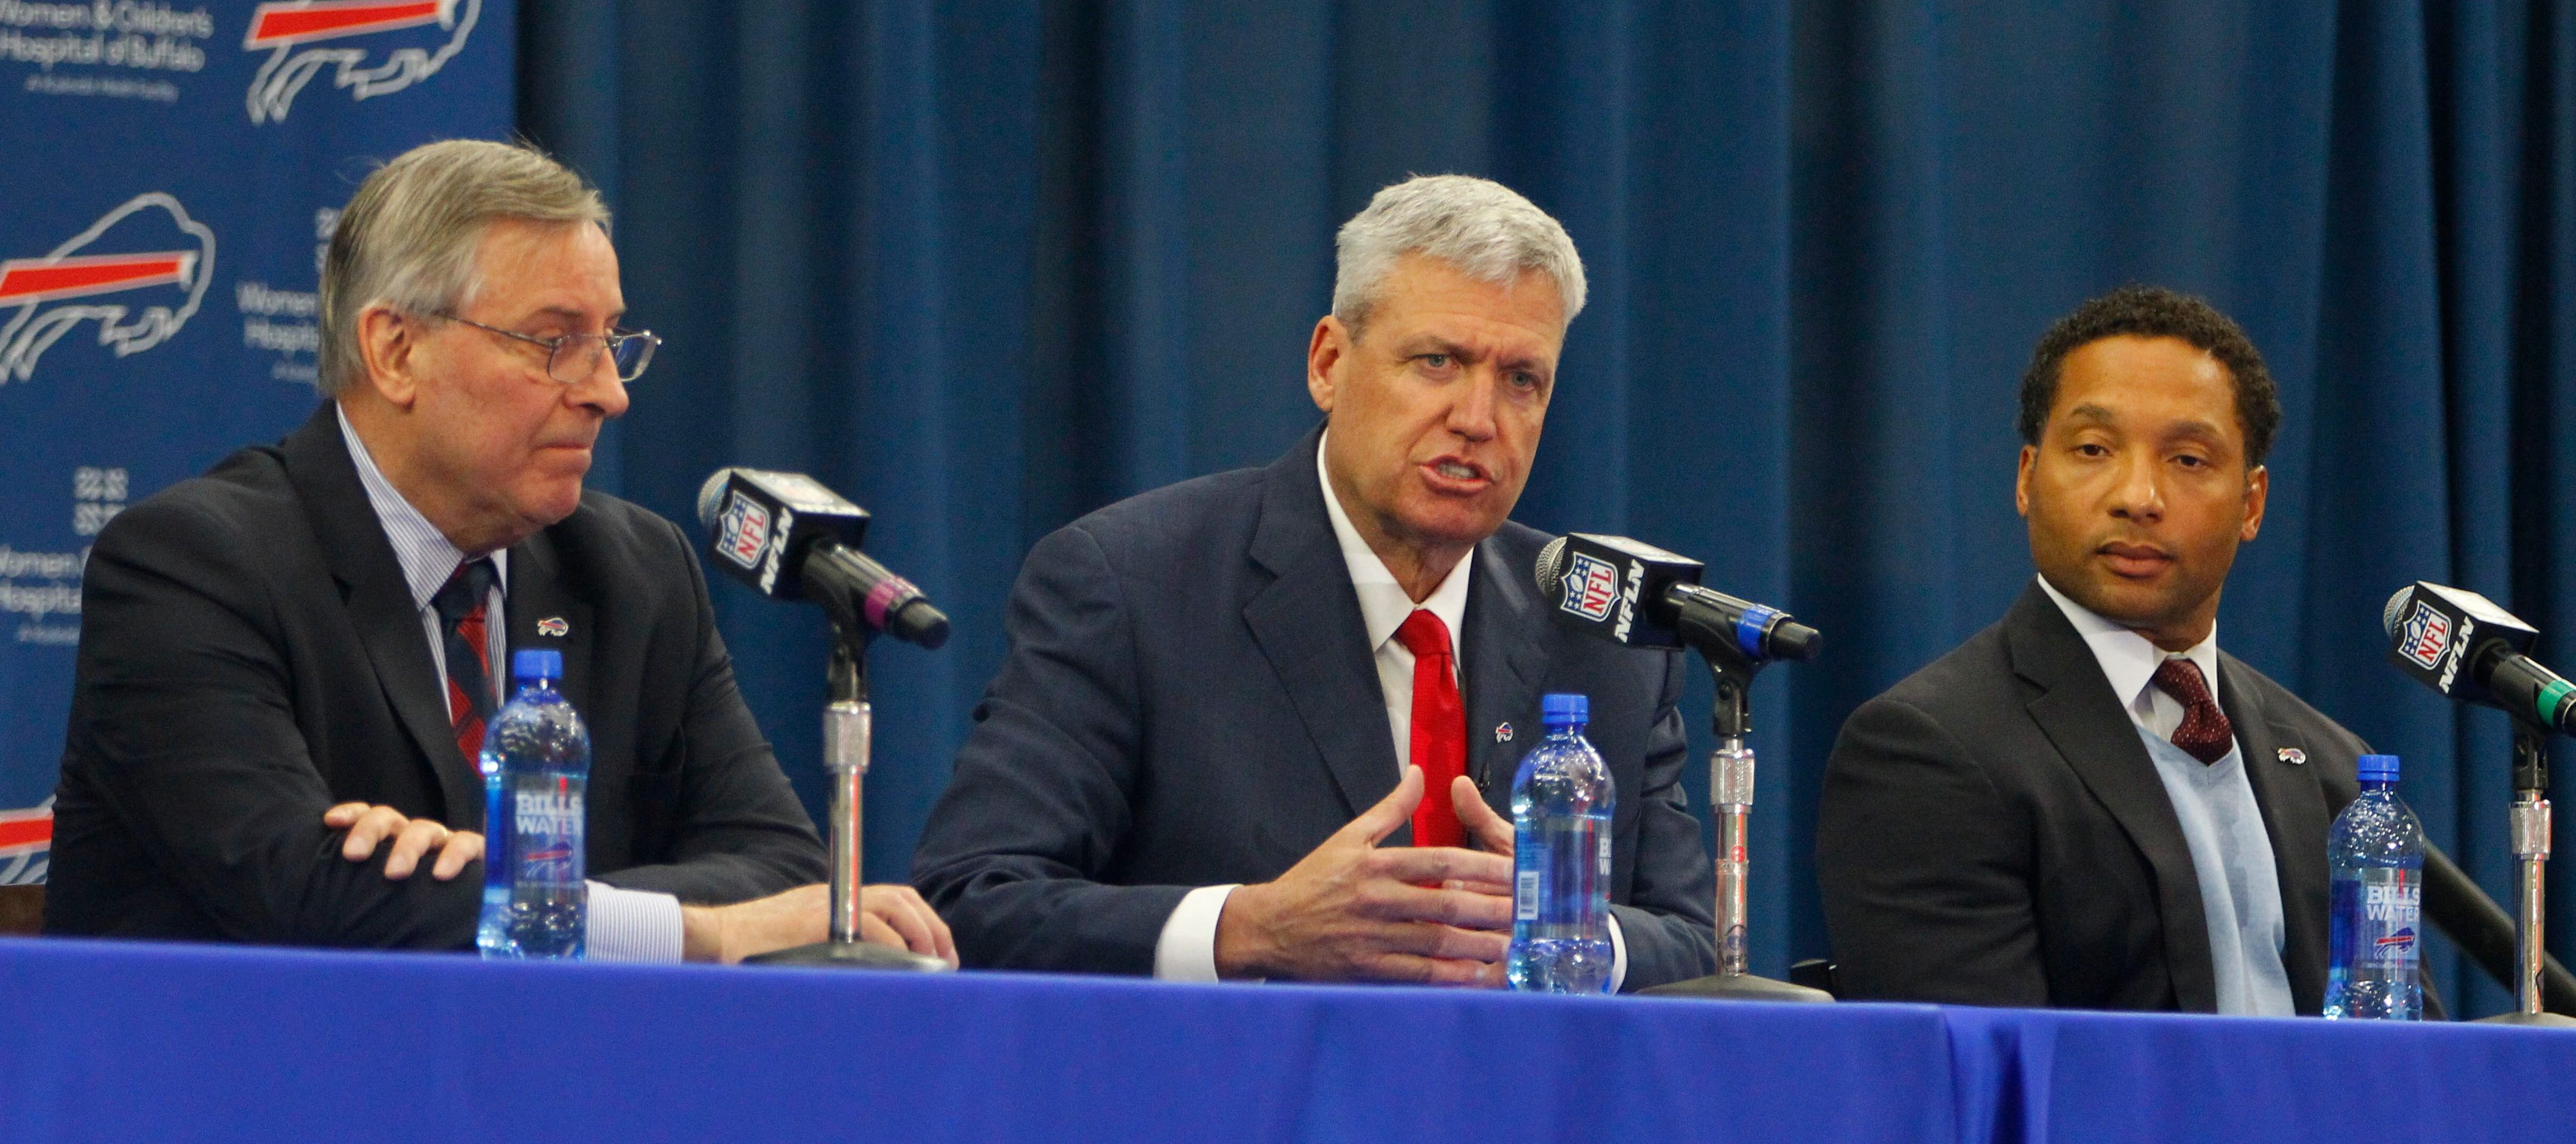 Bills owner Terry Pegula, left, is seen with head coach Rex Ryan and general manager Doug Whaley at a news conference Jan. 14, 2015. (John Hickey/Buffalo News)